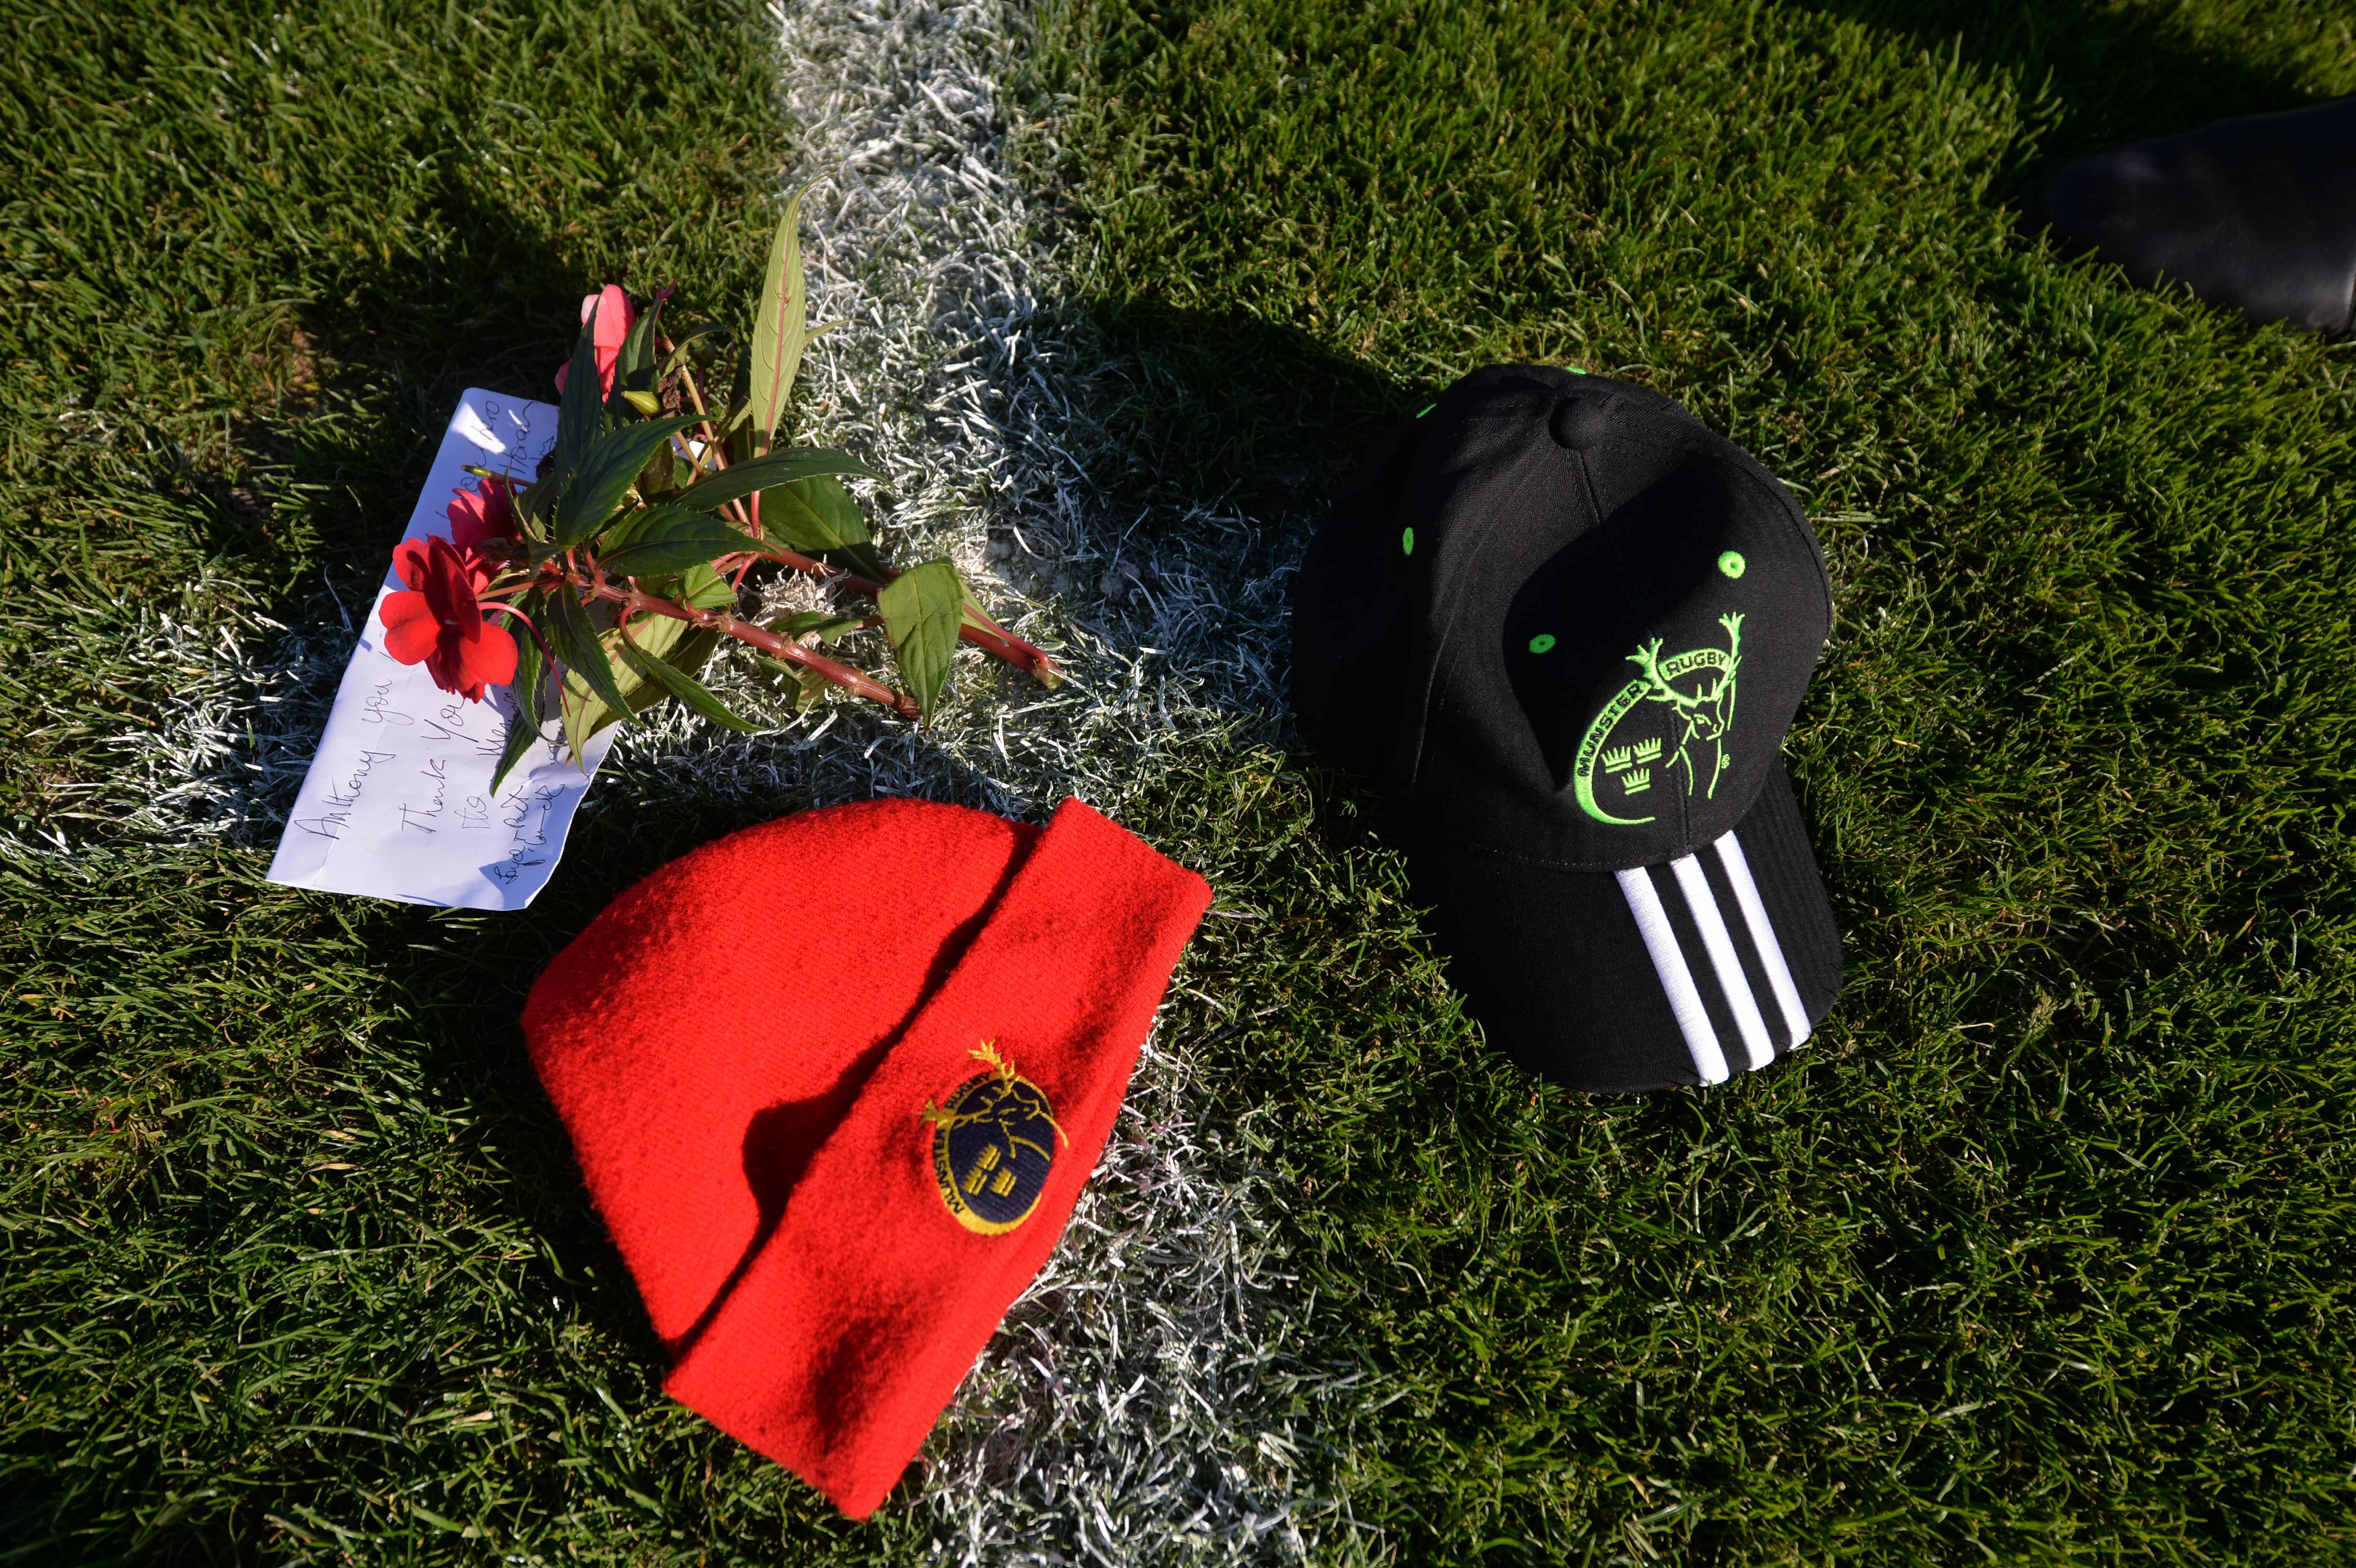 Rugby - L'Irlande entière rend hommage à Anthony Foley